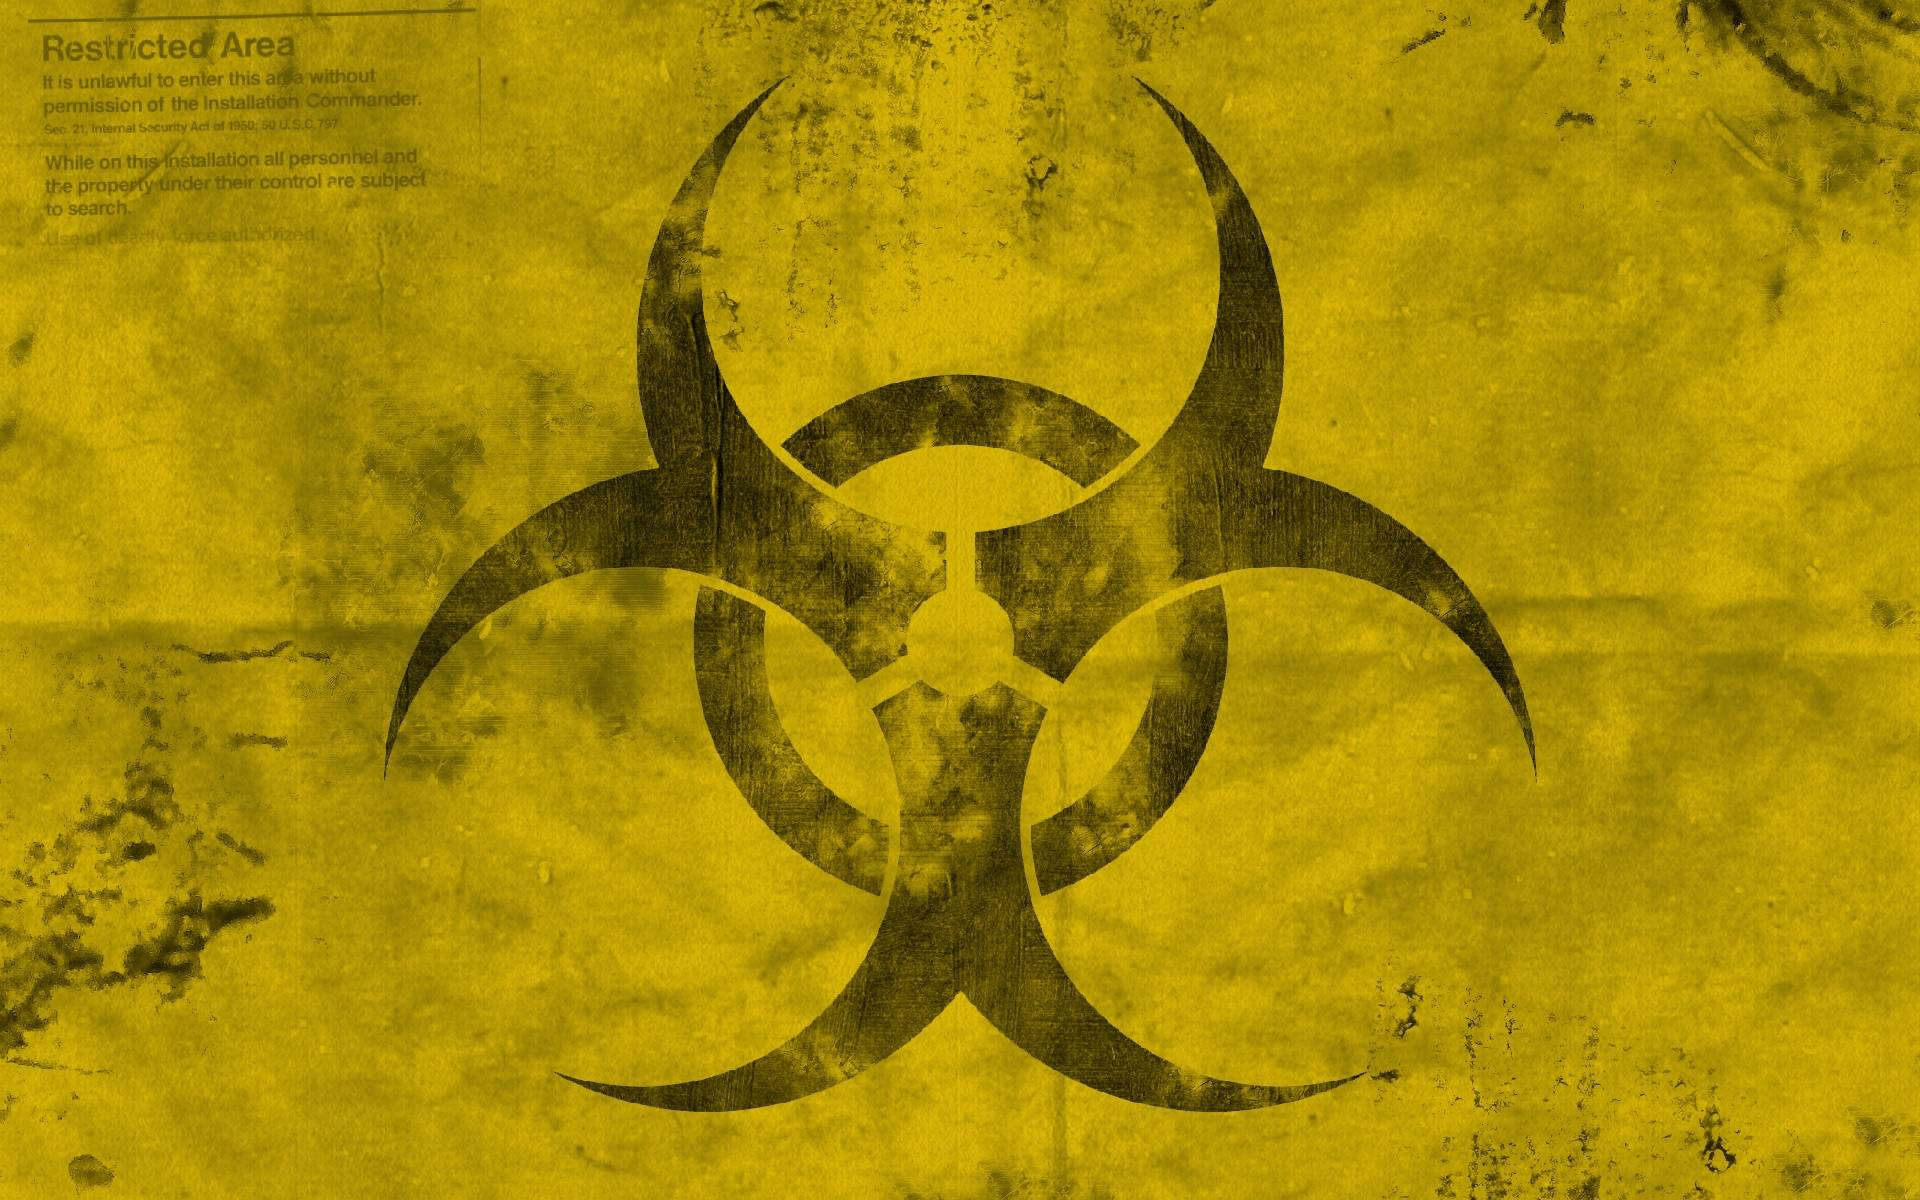 Radioactive Zombie Wallpaper Biohazard Symbo...